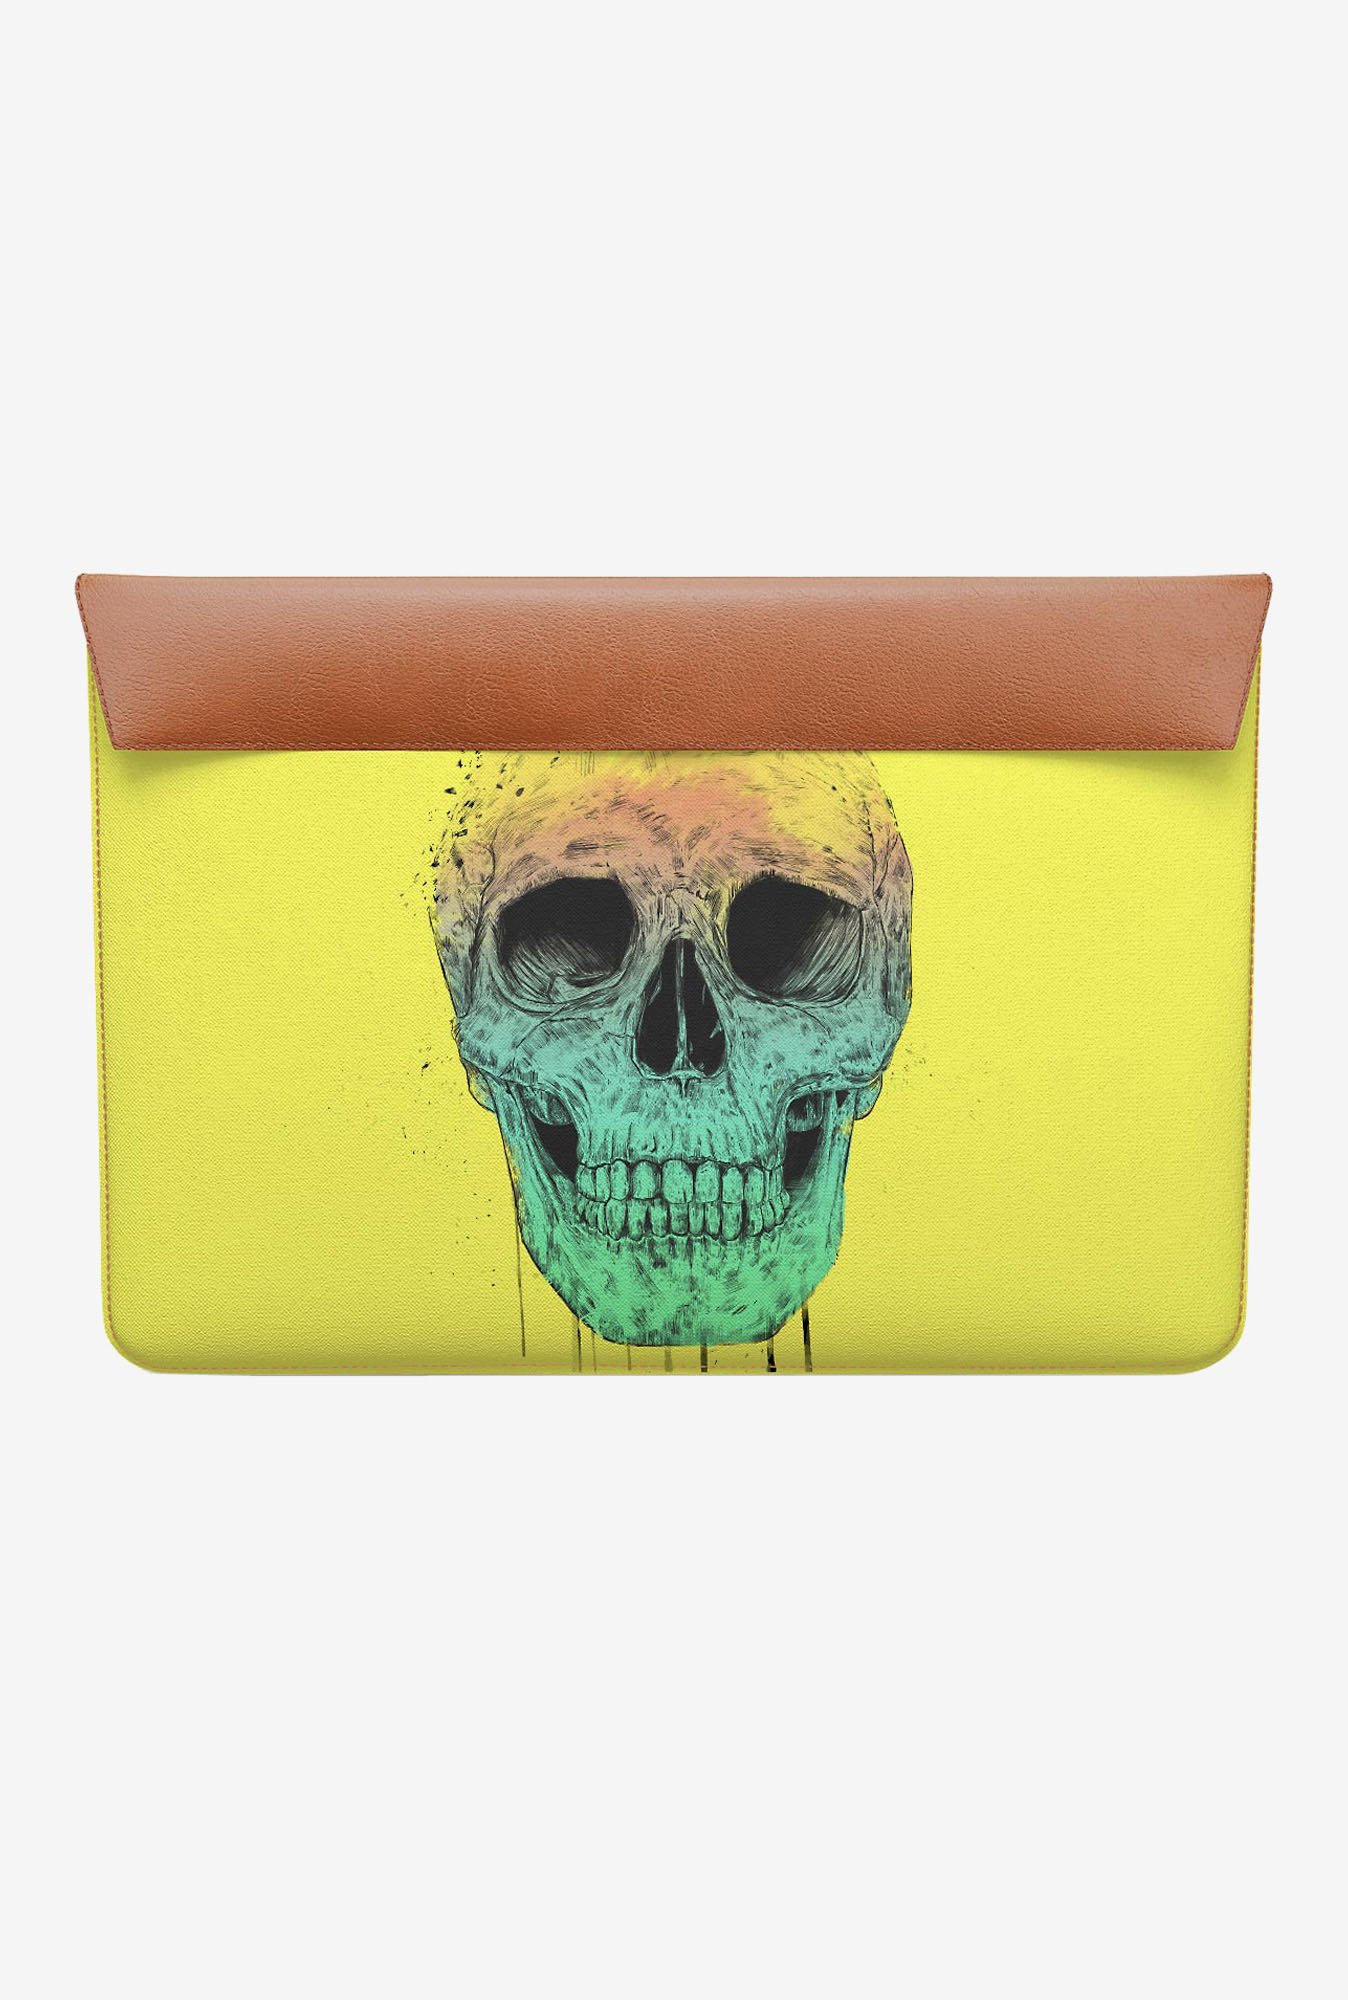 DailyObjects Pop Art Skull MacBook Air 11 Envelope Sleeve